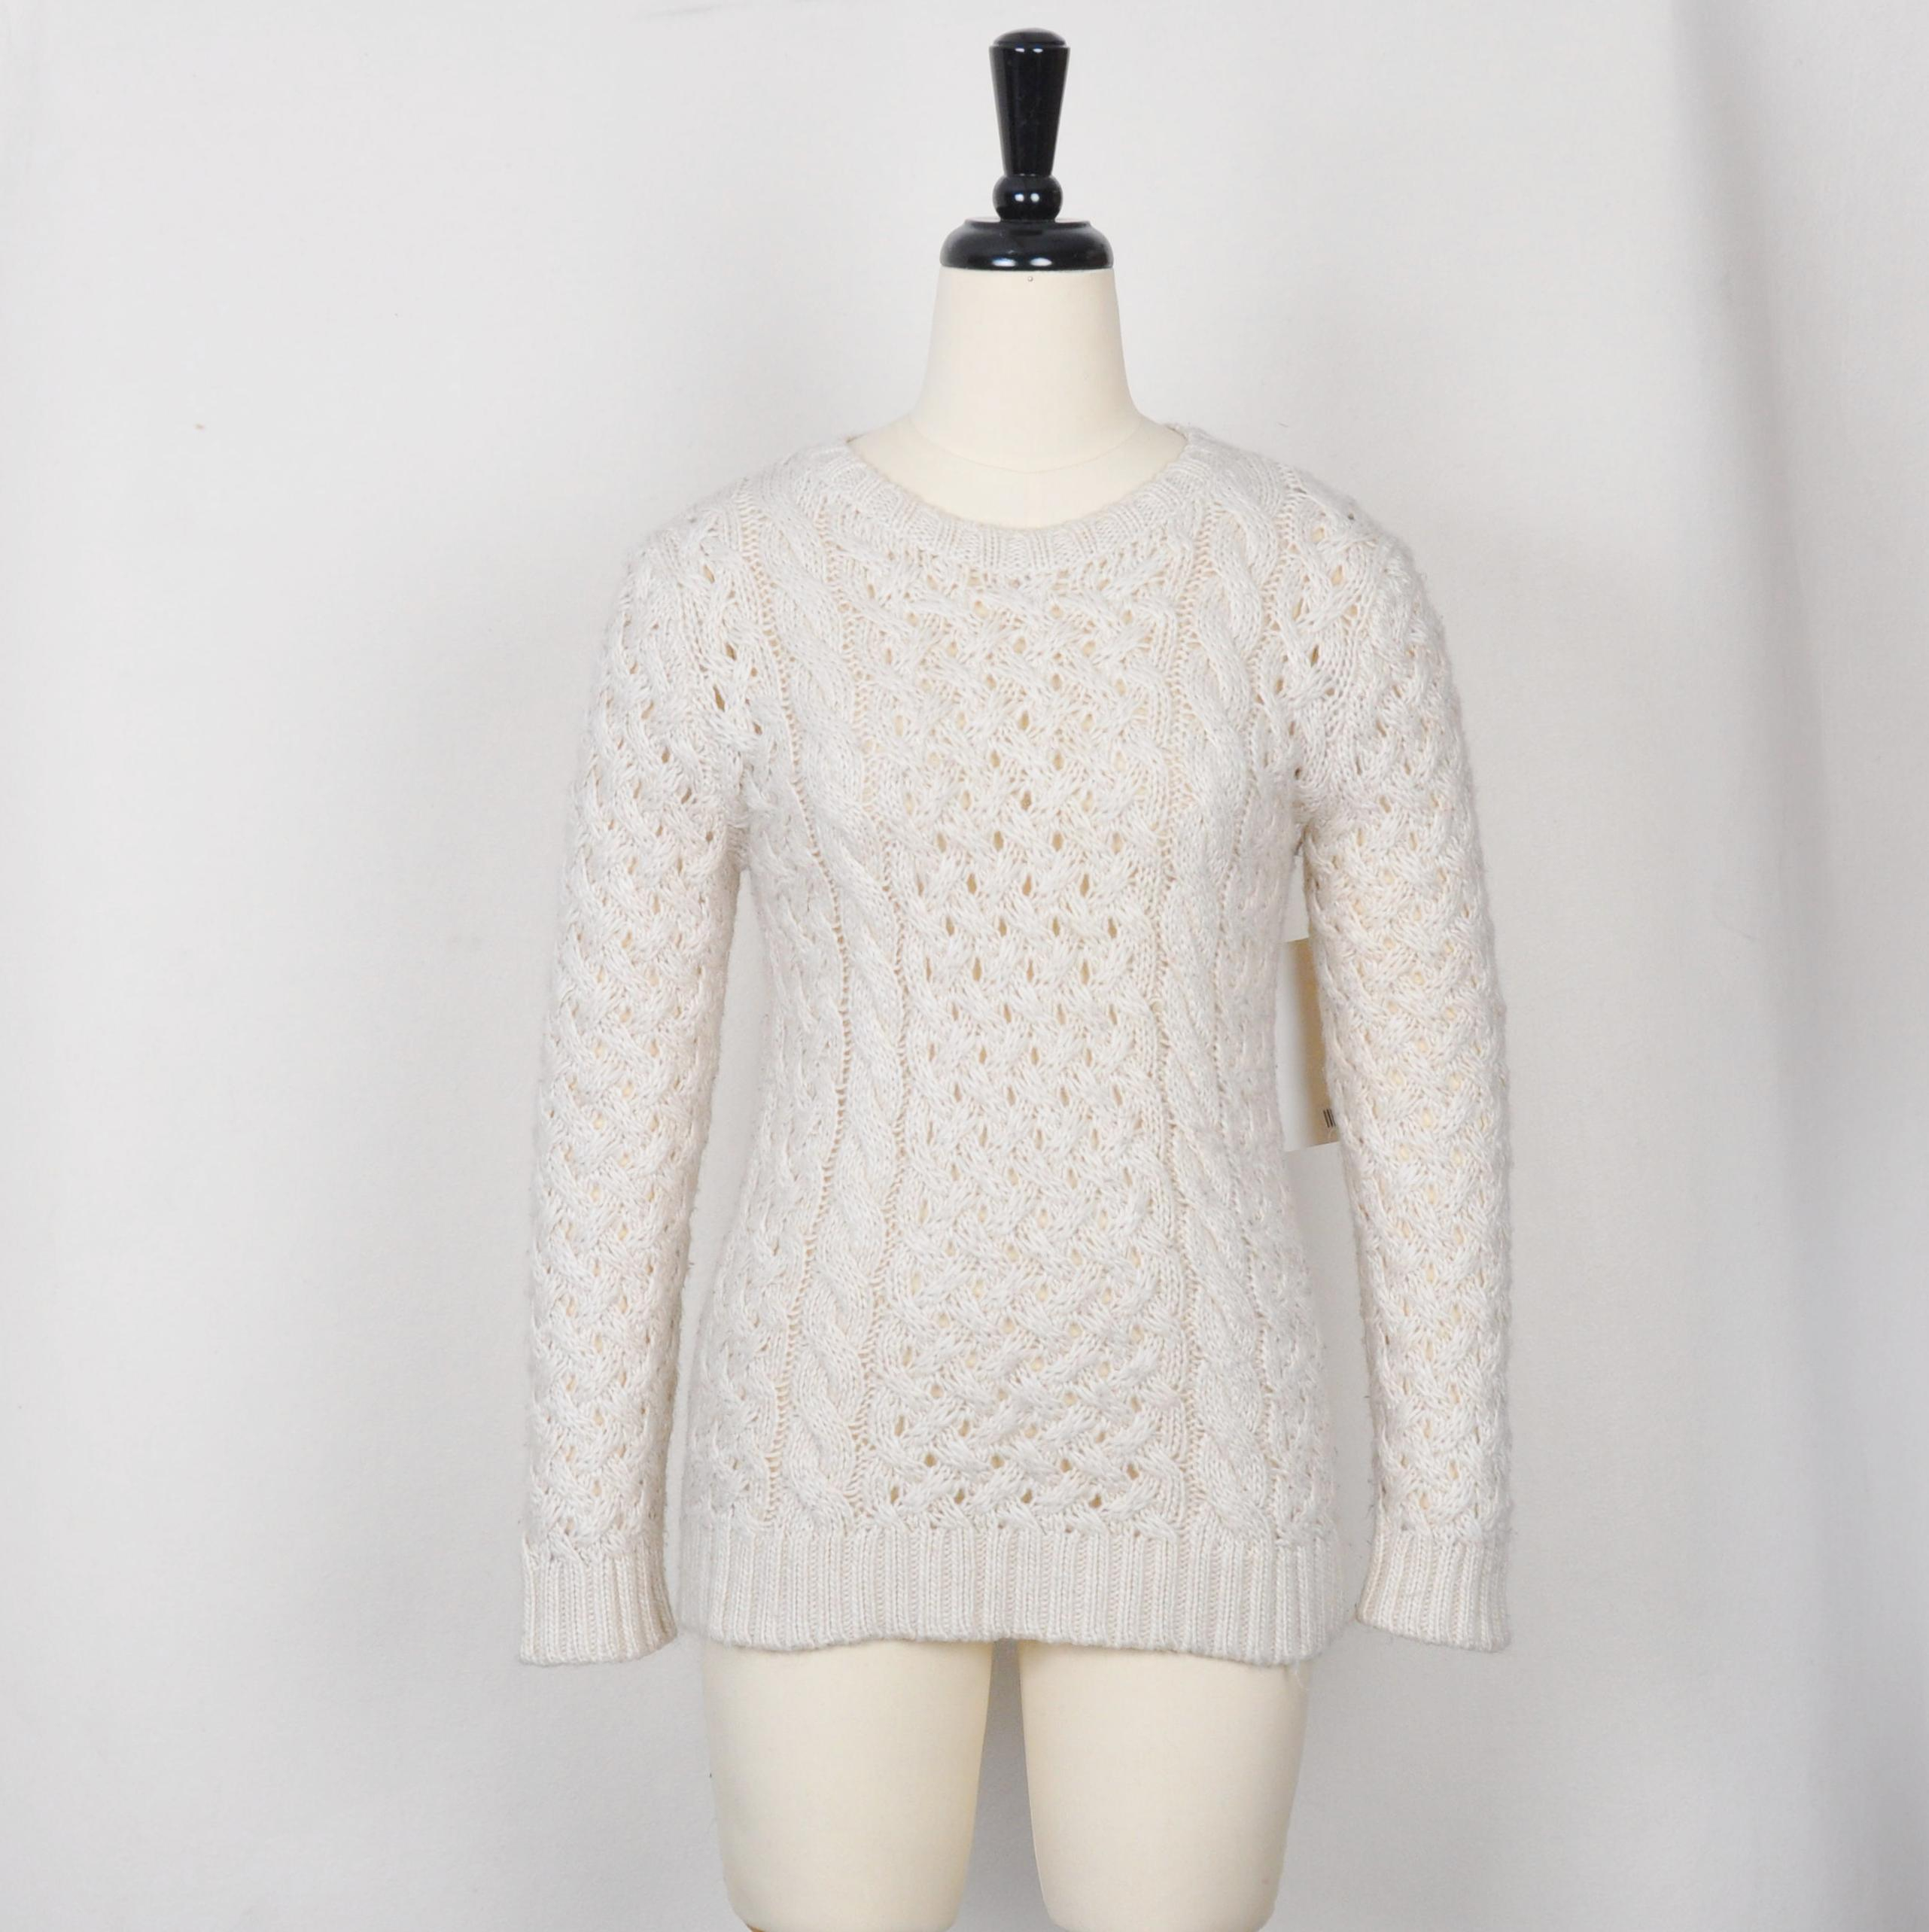 Knitted Pullover Sweater Patterns Hot Item Mohairwool Blend Chunky Cable Knit Pullover Sweater For Women